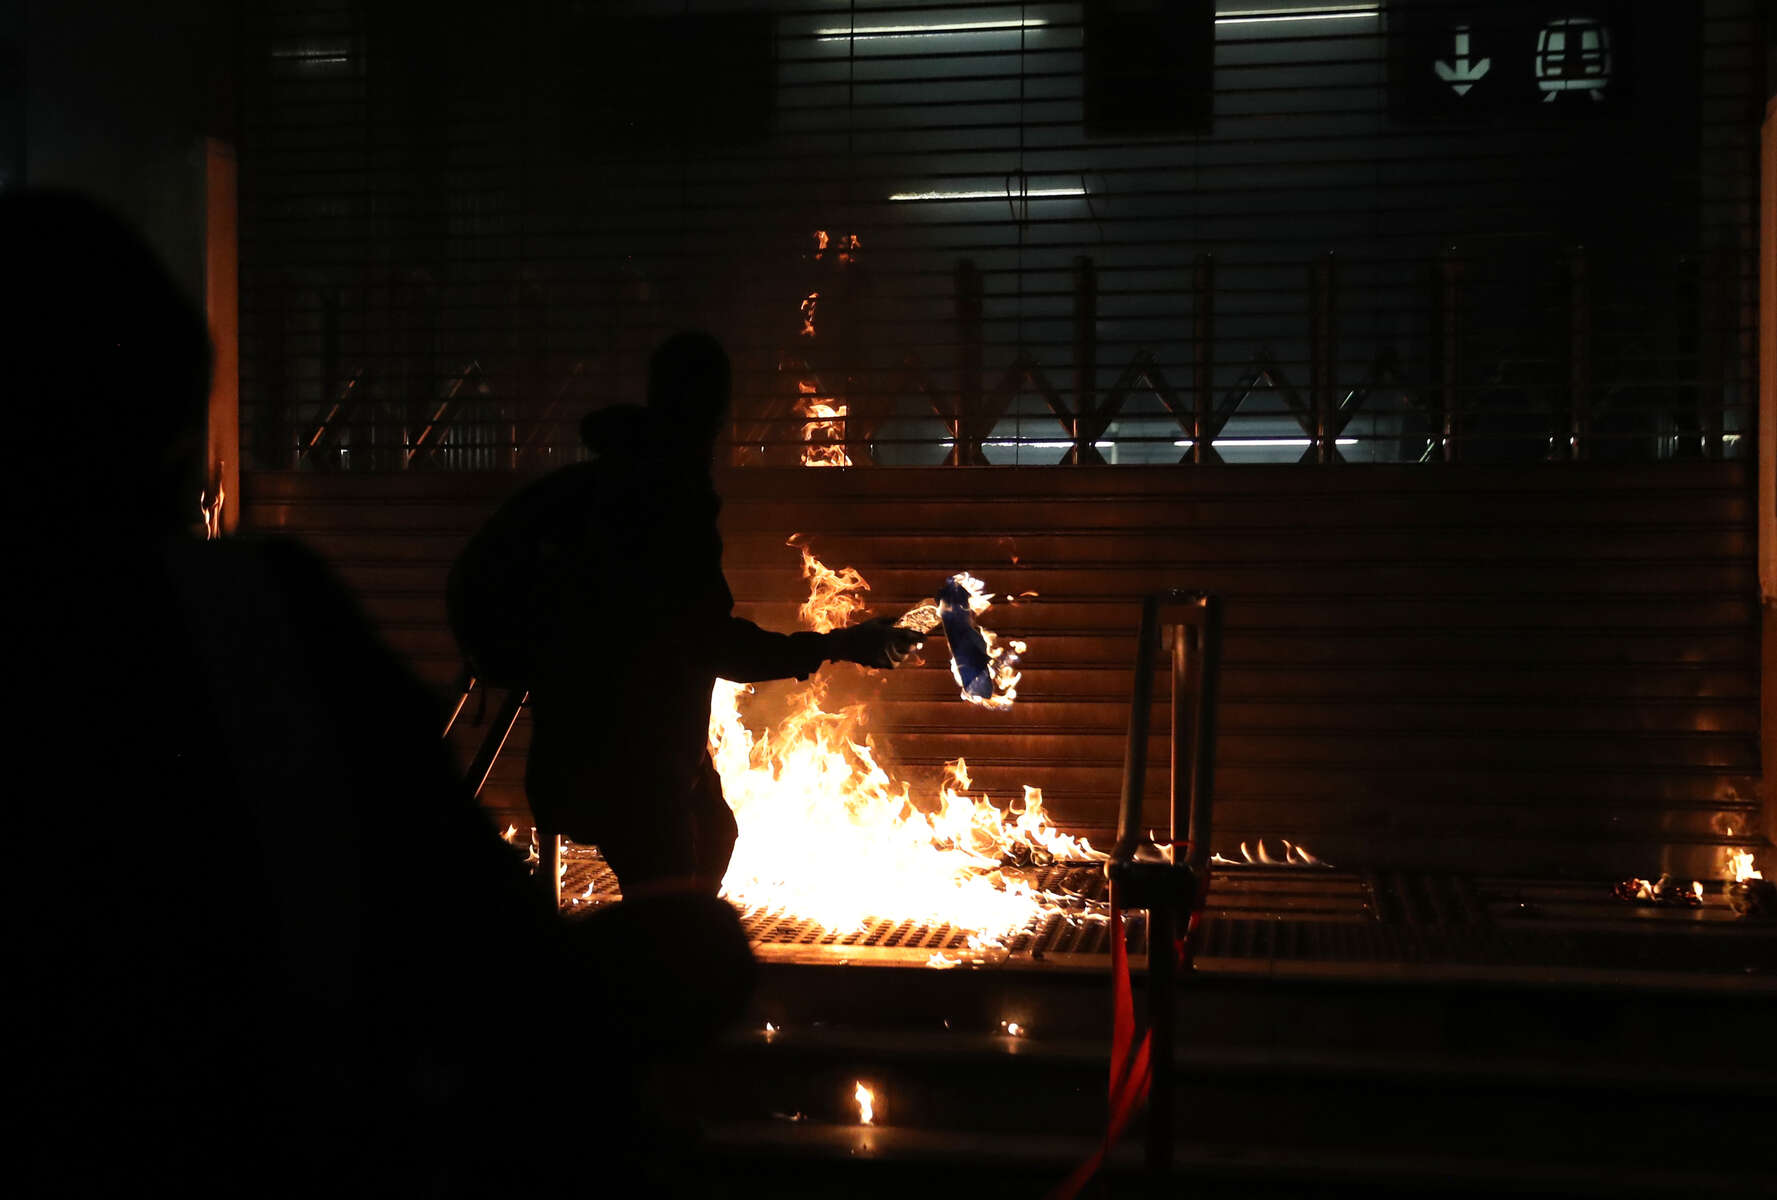 A protester throws a Molotov cocktail at an MTR station in Hung Hom after a day of protests in Hong Kong, China December 1, 2019.